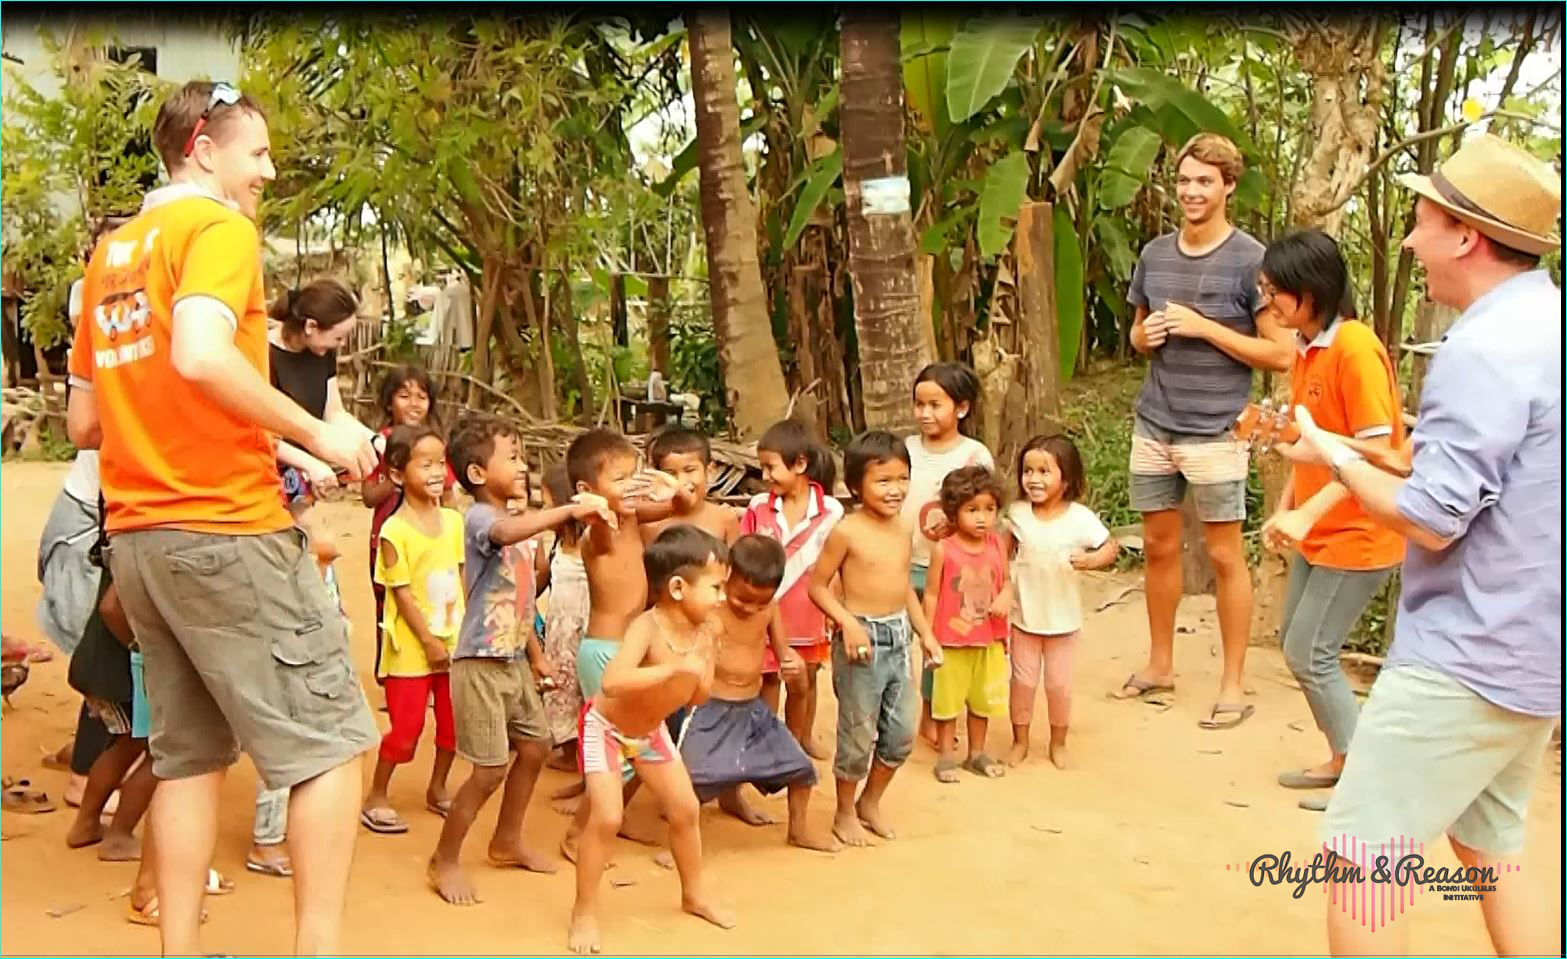 Rhythm & Reason Initiative Launches In Cambodia With Ukuleles